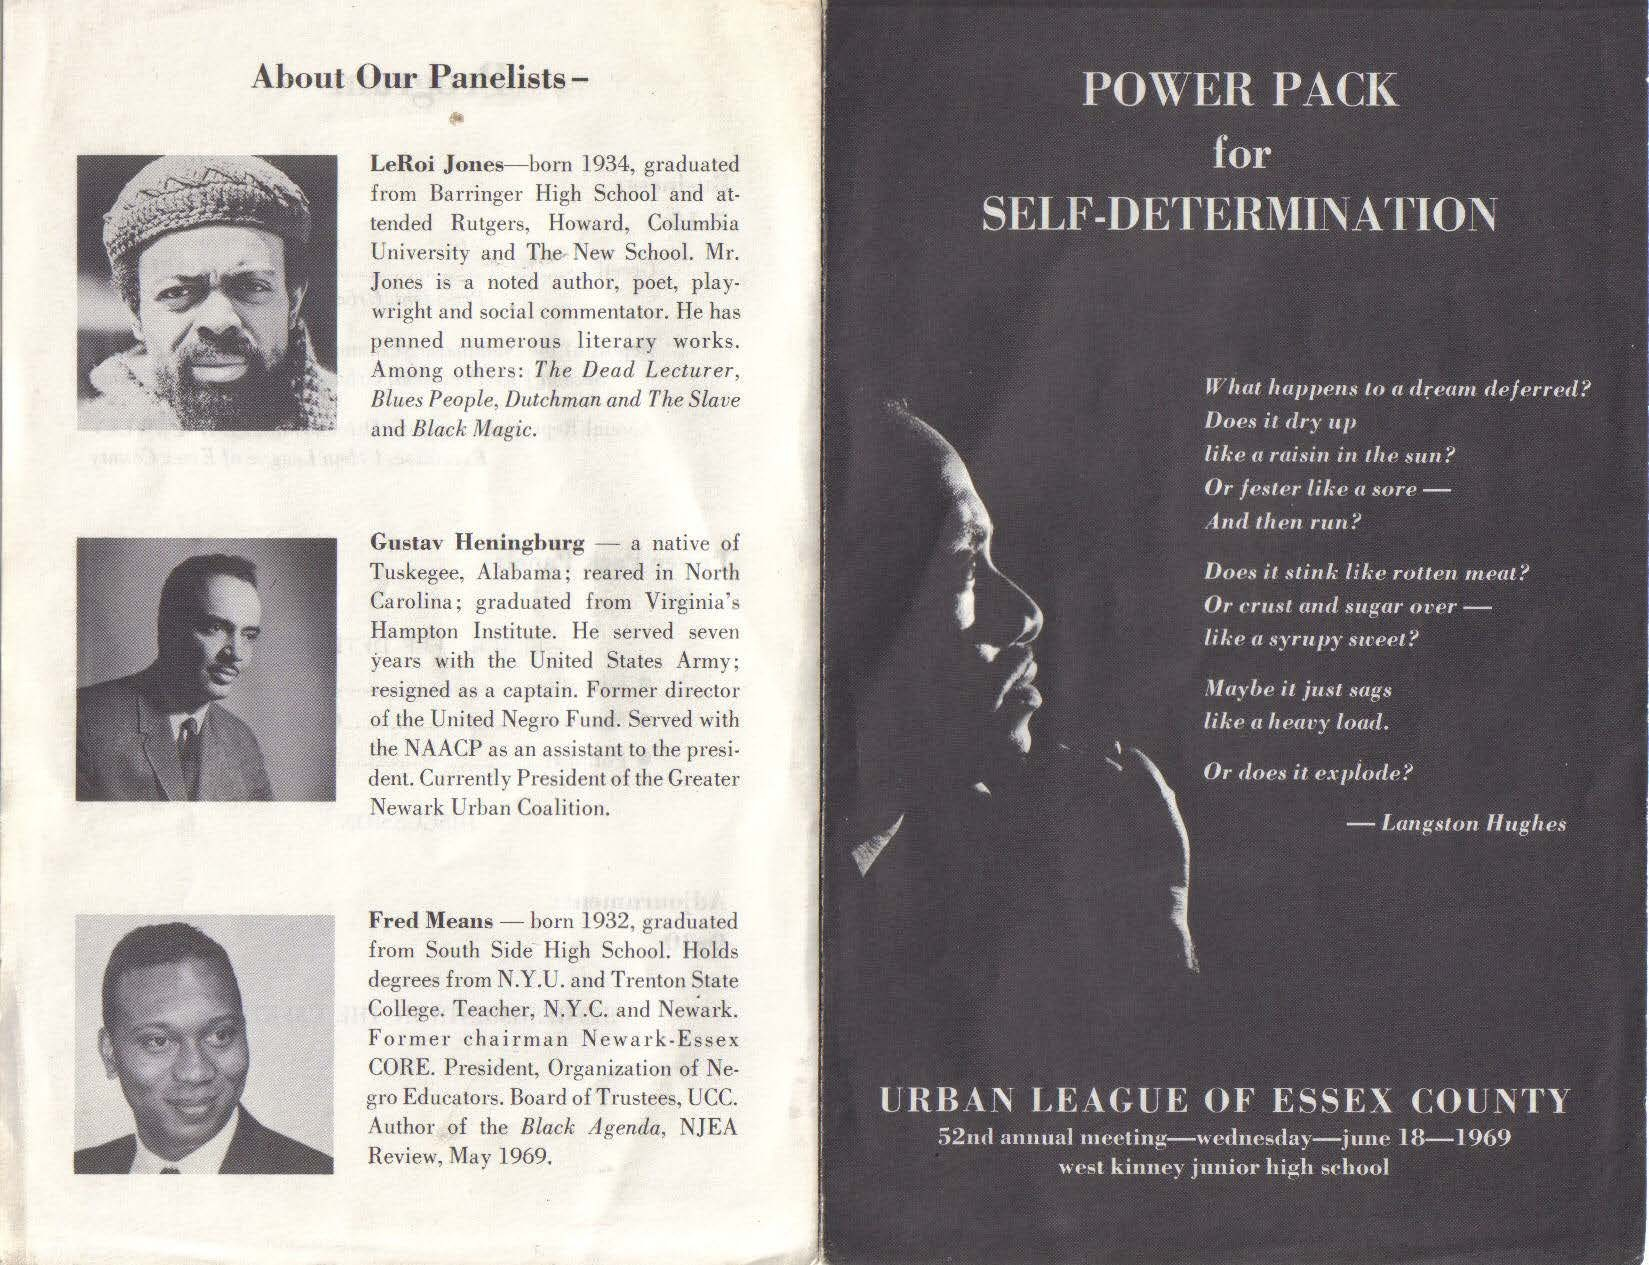 Power Pack for Self-Determination, 1969